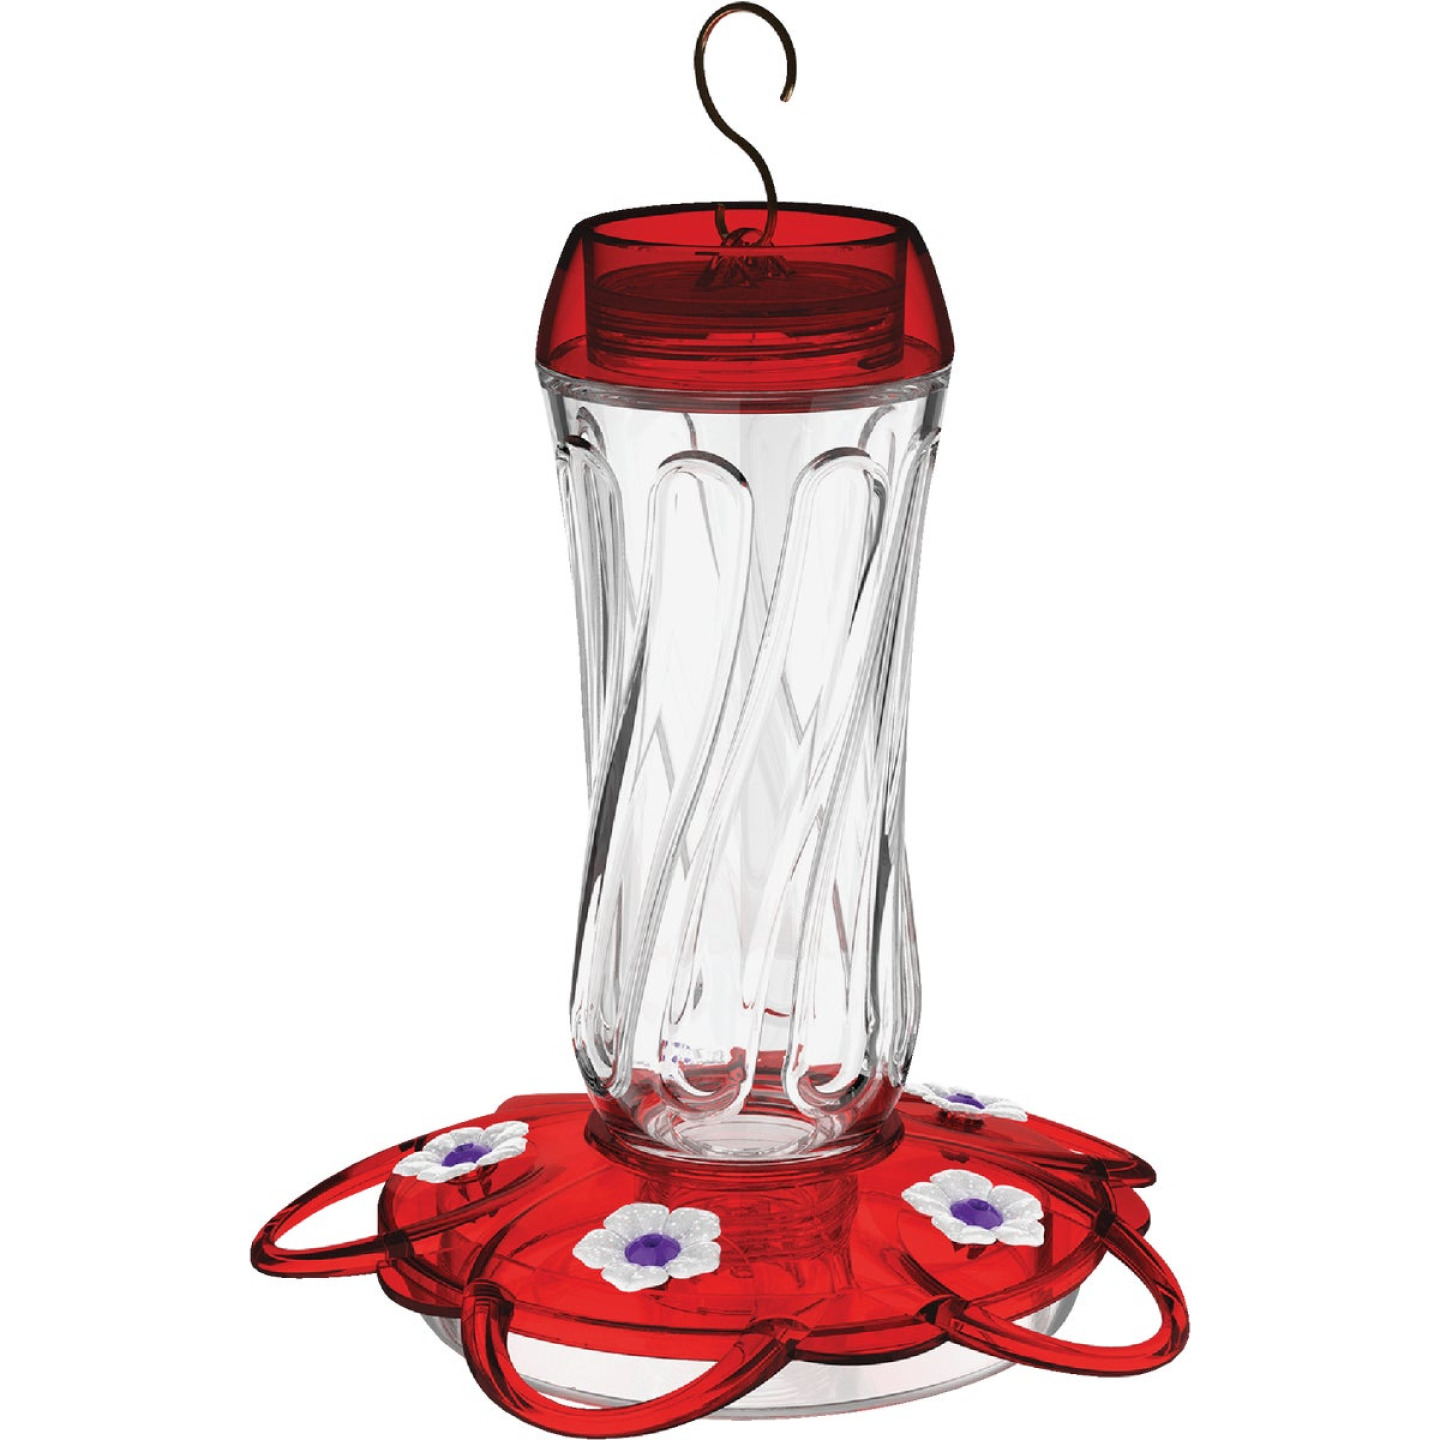 More Birds Orion 16 Oz. Glass Hummingbird Feeder Image 1